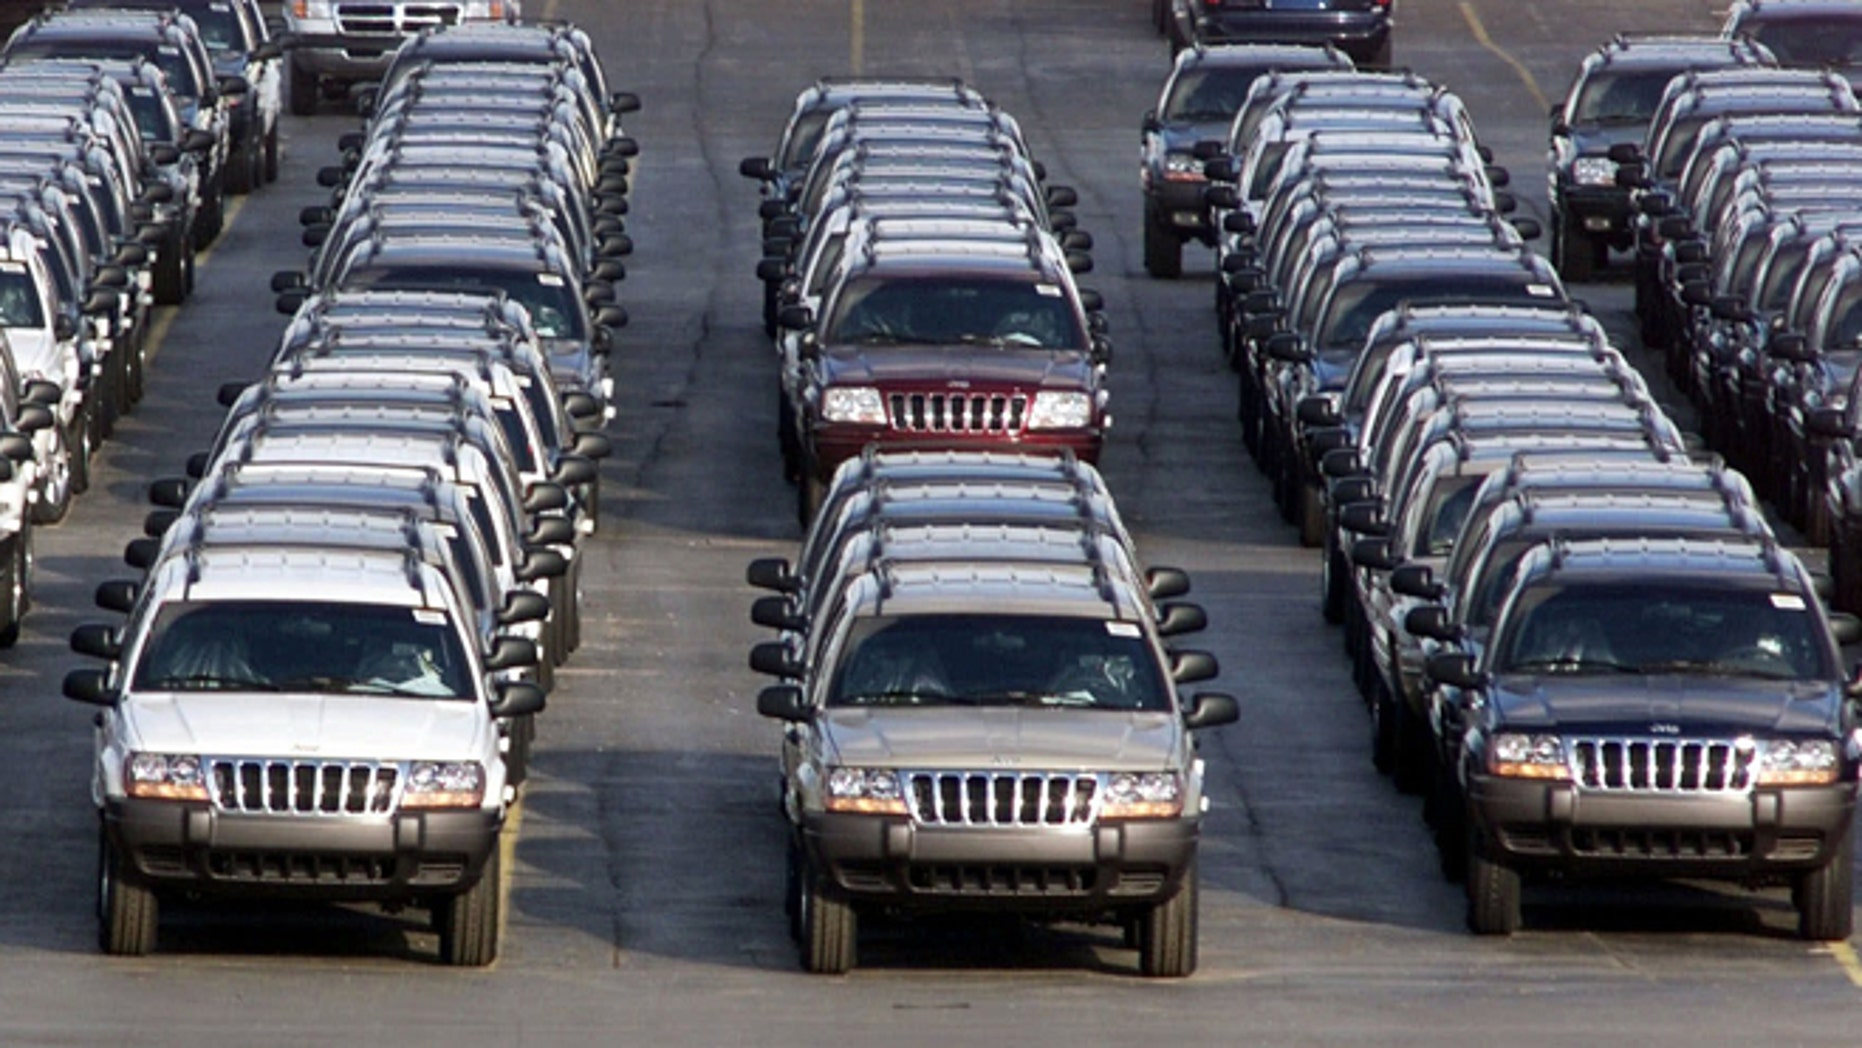 FILE - In this file photo taken Fed. 2, 2001, rows of 2001 Jeep Grand Cherokees are lined up outside the Jefferson North Assembly Plant in Detroit.  (AP Photo/Carlos Osorio, File)